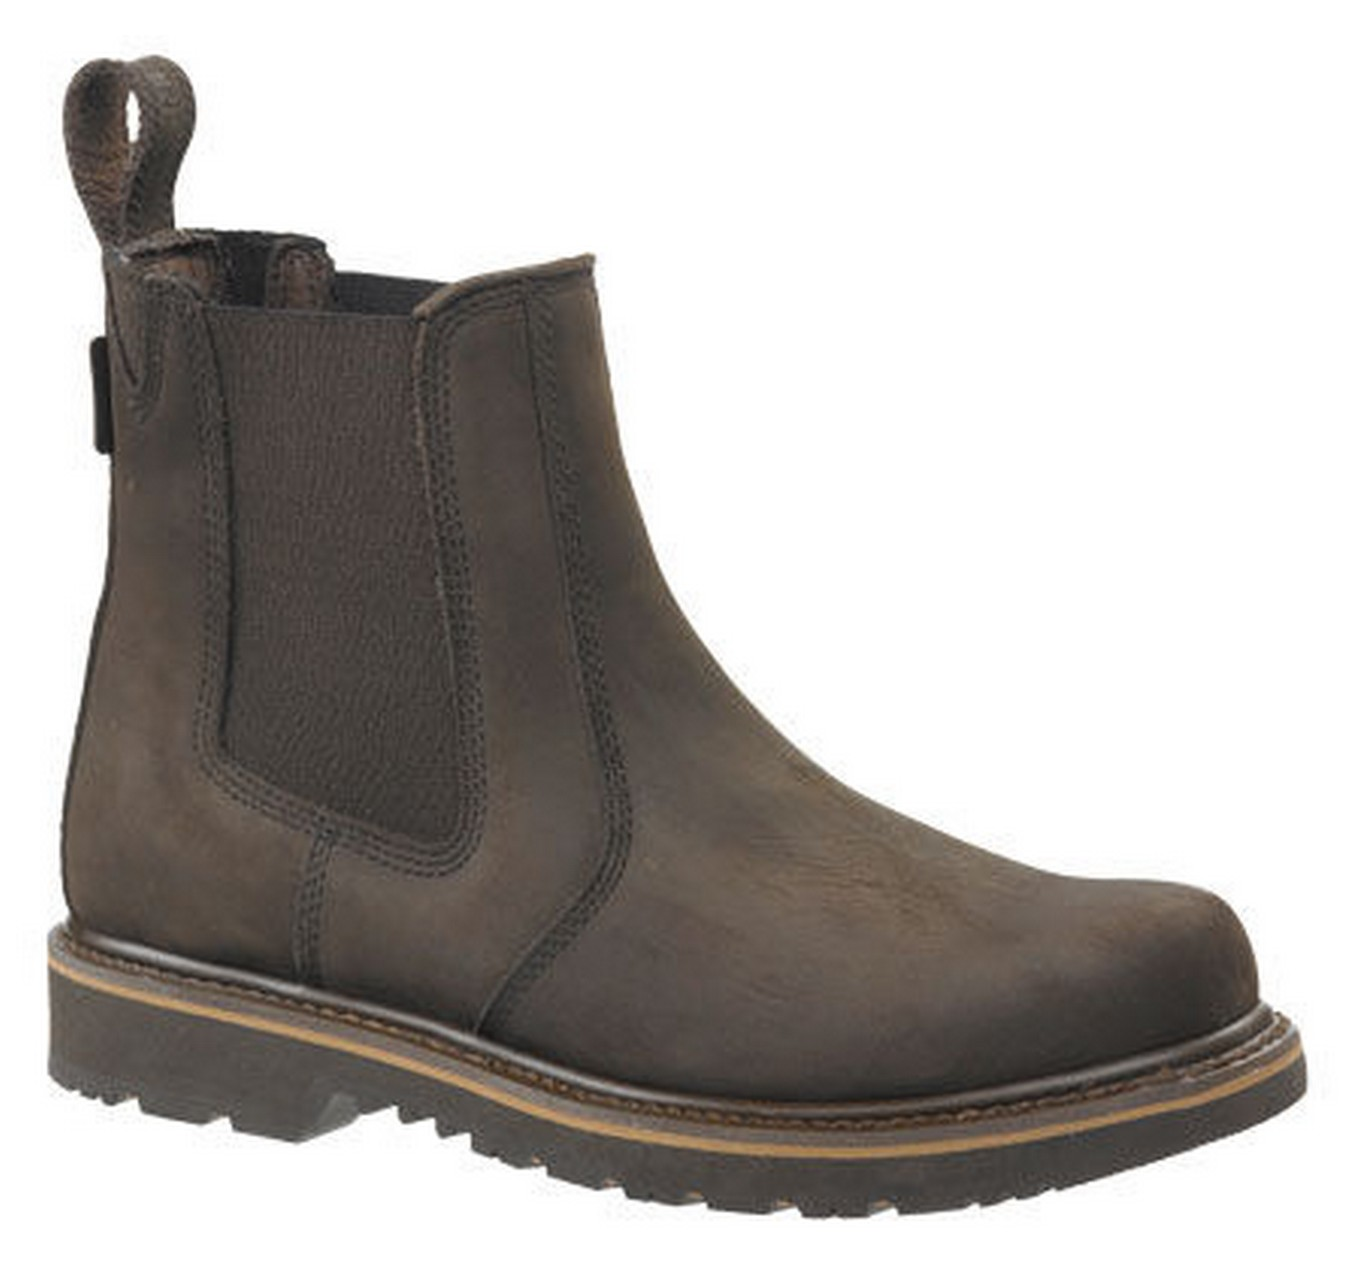 Dealer Boot Buckflex B1400 11